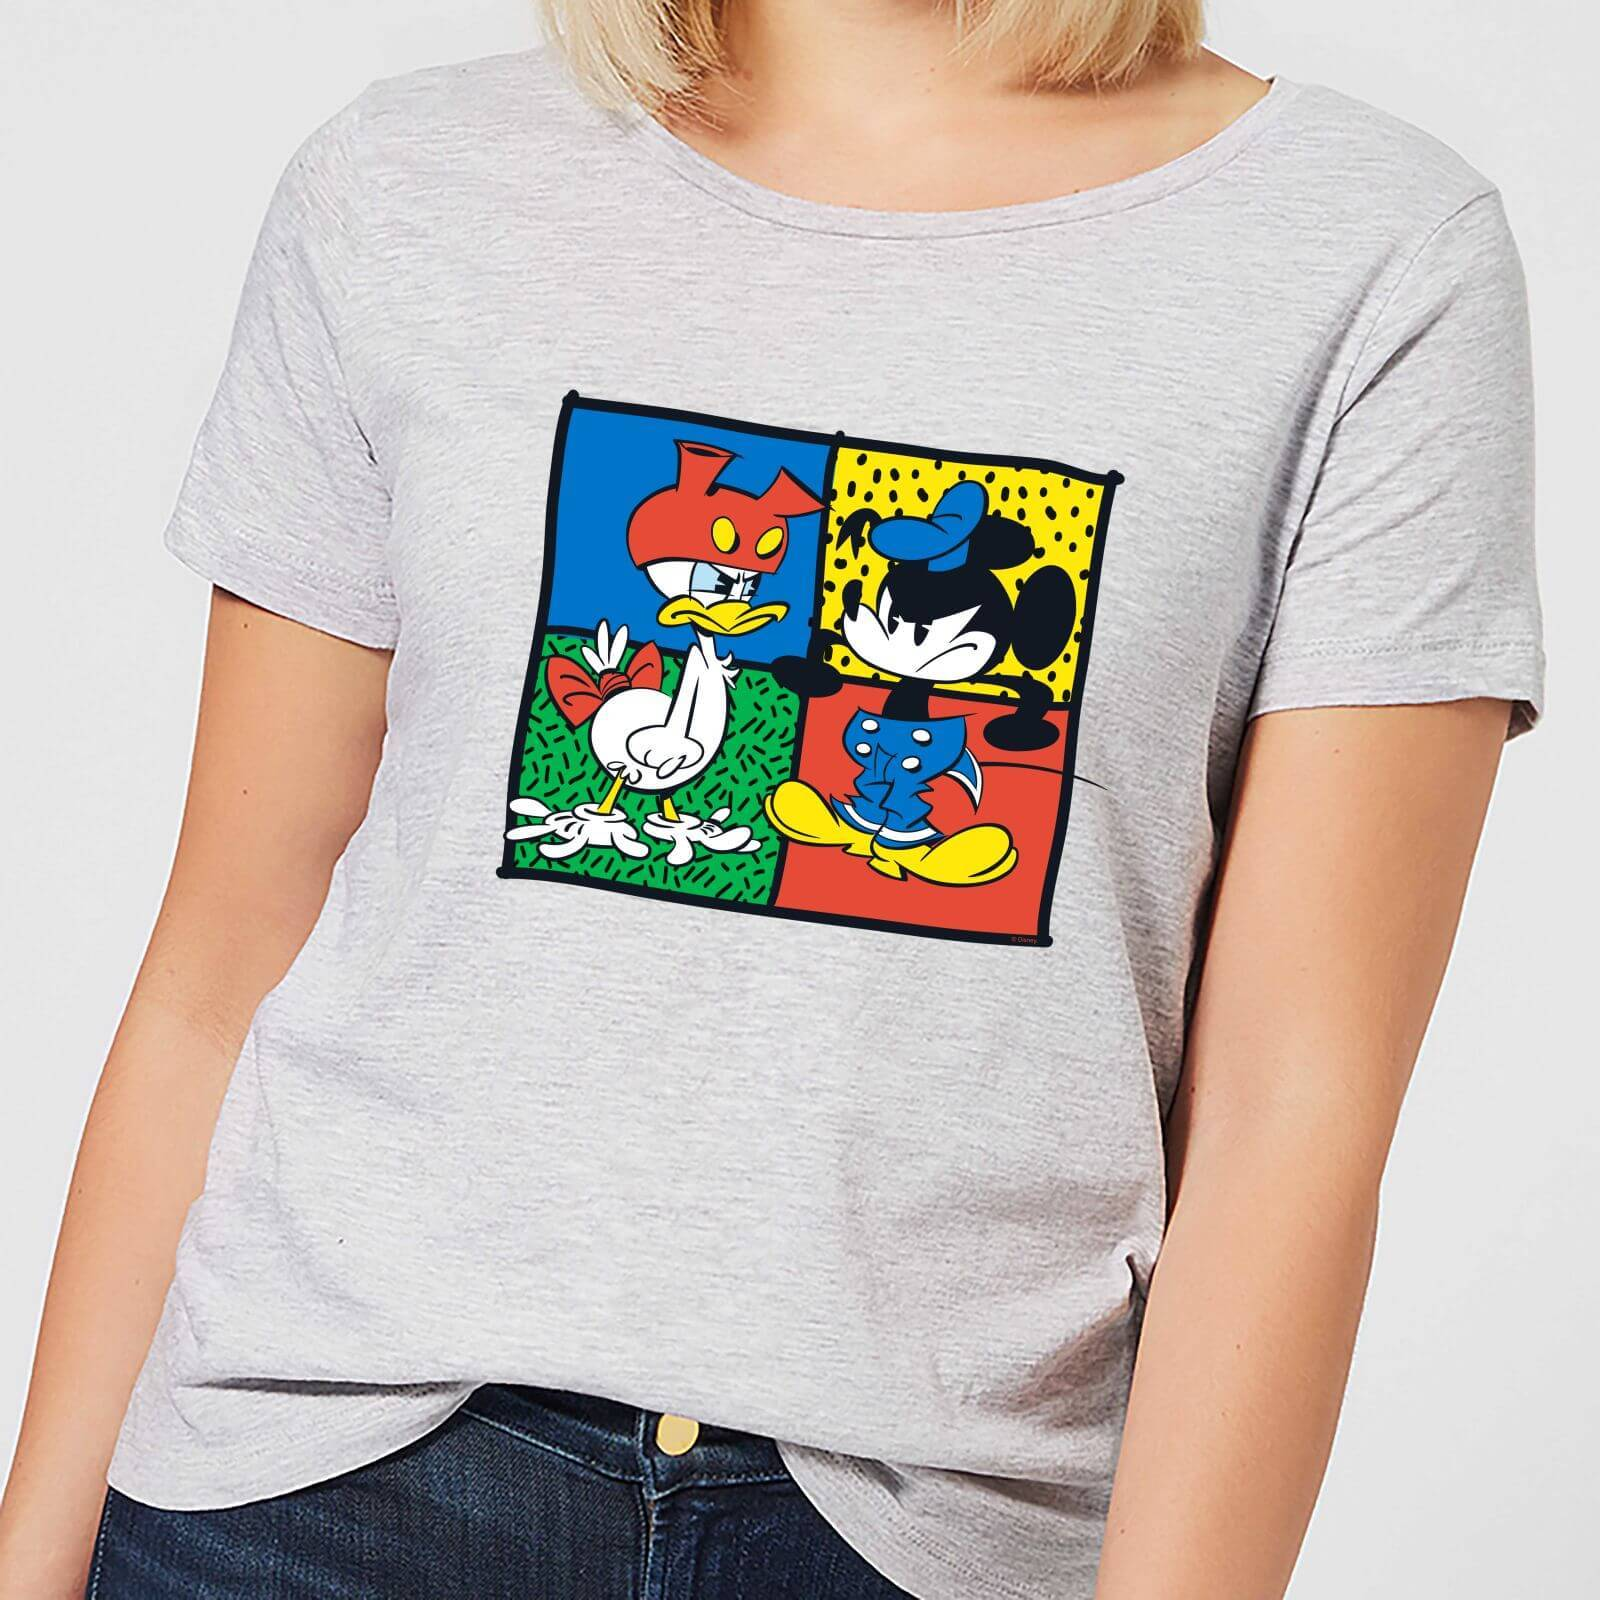 Disney Mickey And Donald Clothes Swap Women's T-Shirt - Grey - S - Grey